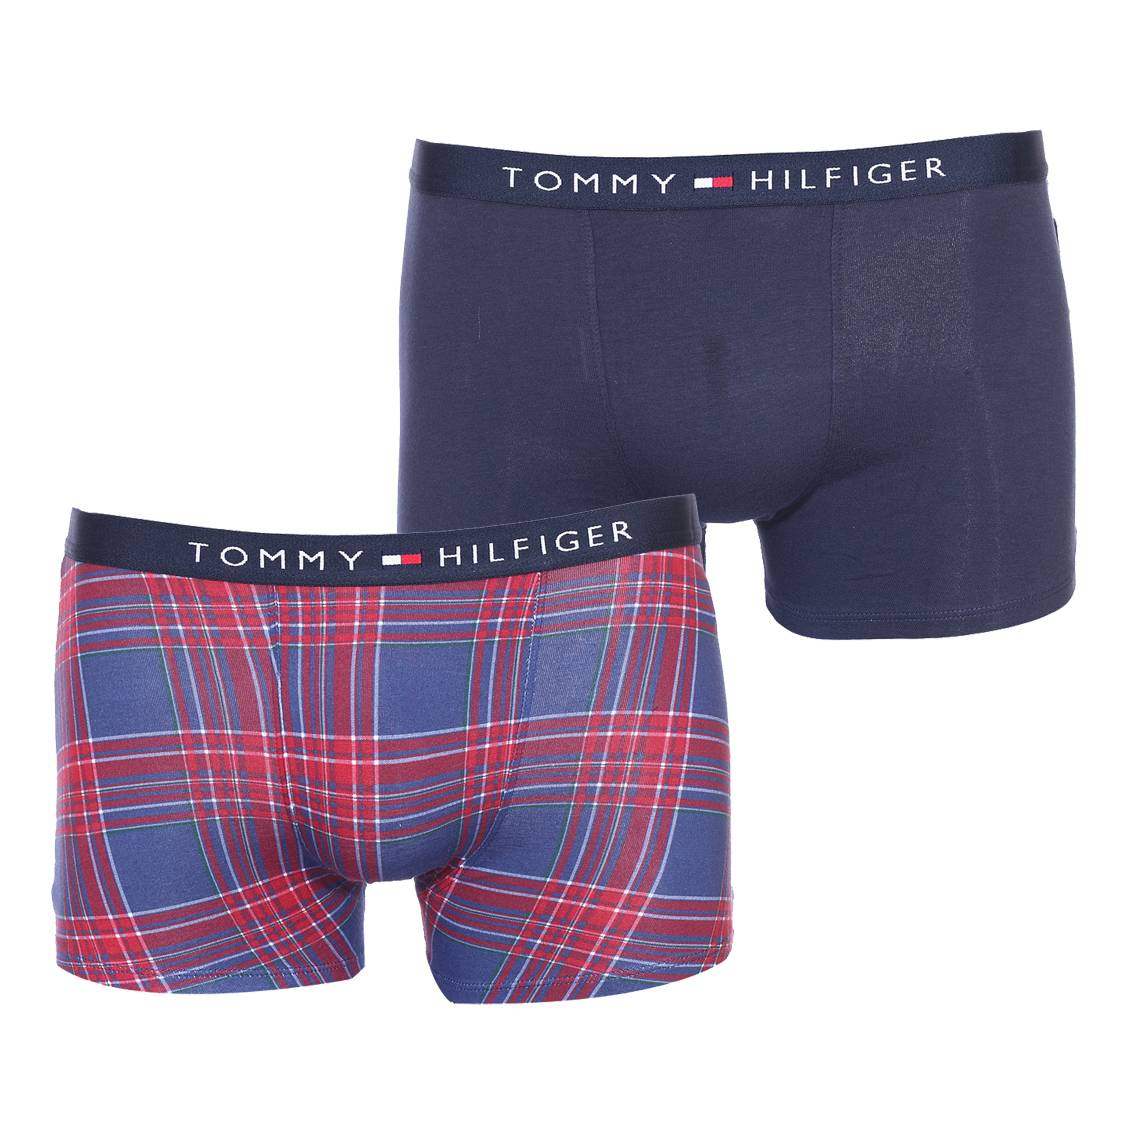 Lot de 2 boxers  en coton stretch bleu marine et à carreaux rouges, blancs et bleu marine